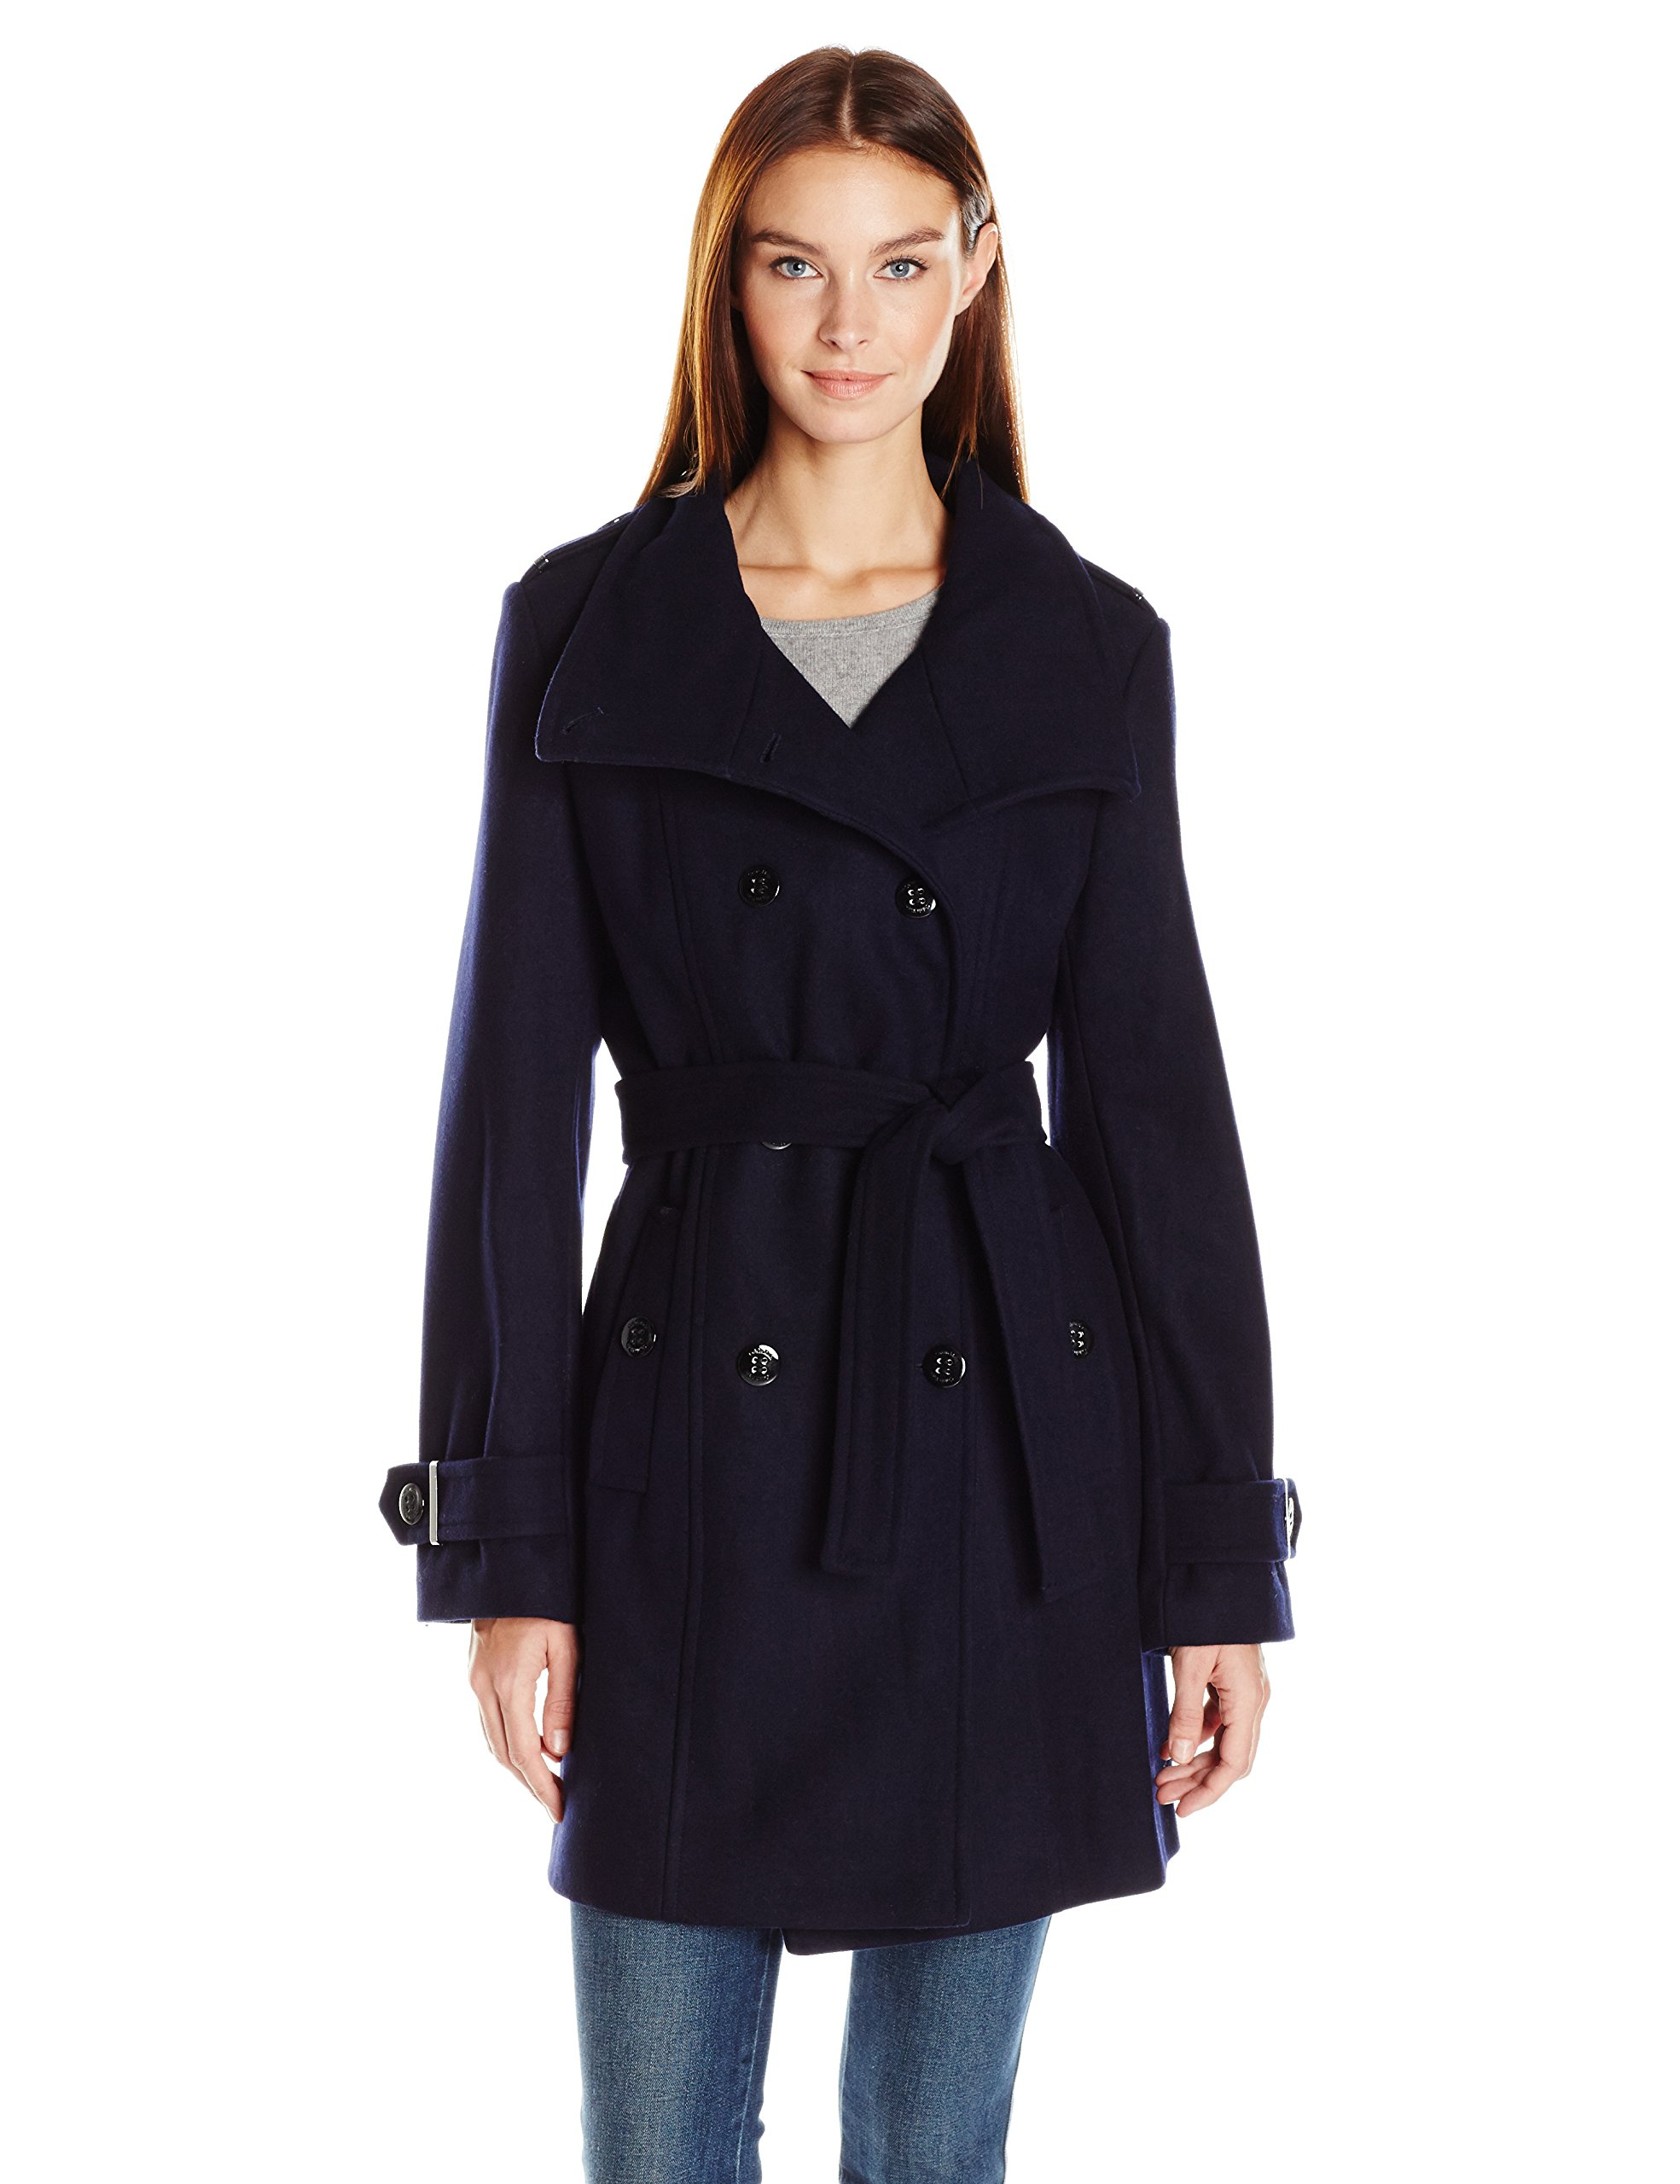 Calvin Klein Women's Wool Belted Double Breasted Coat, Navy, L